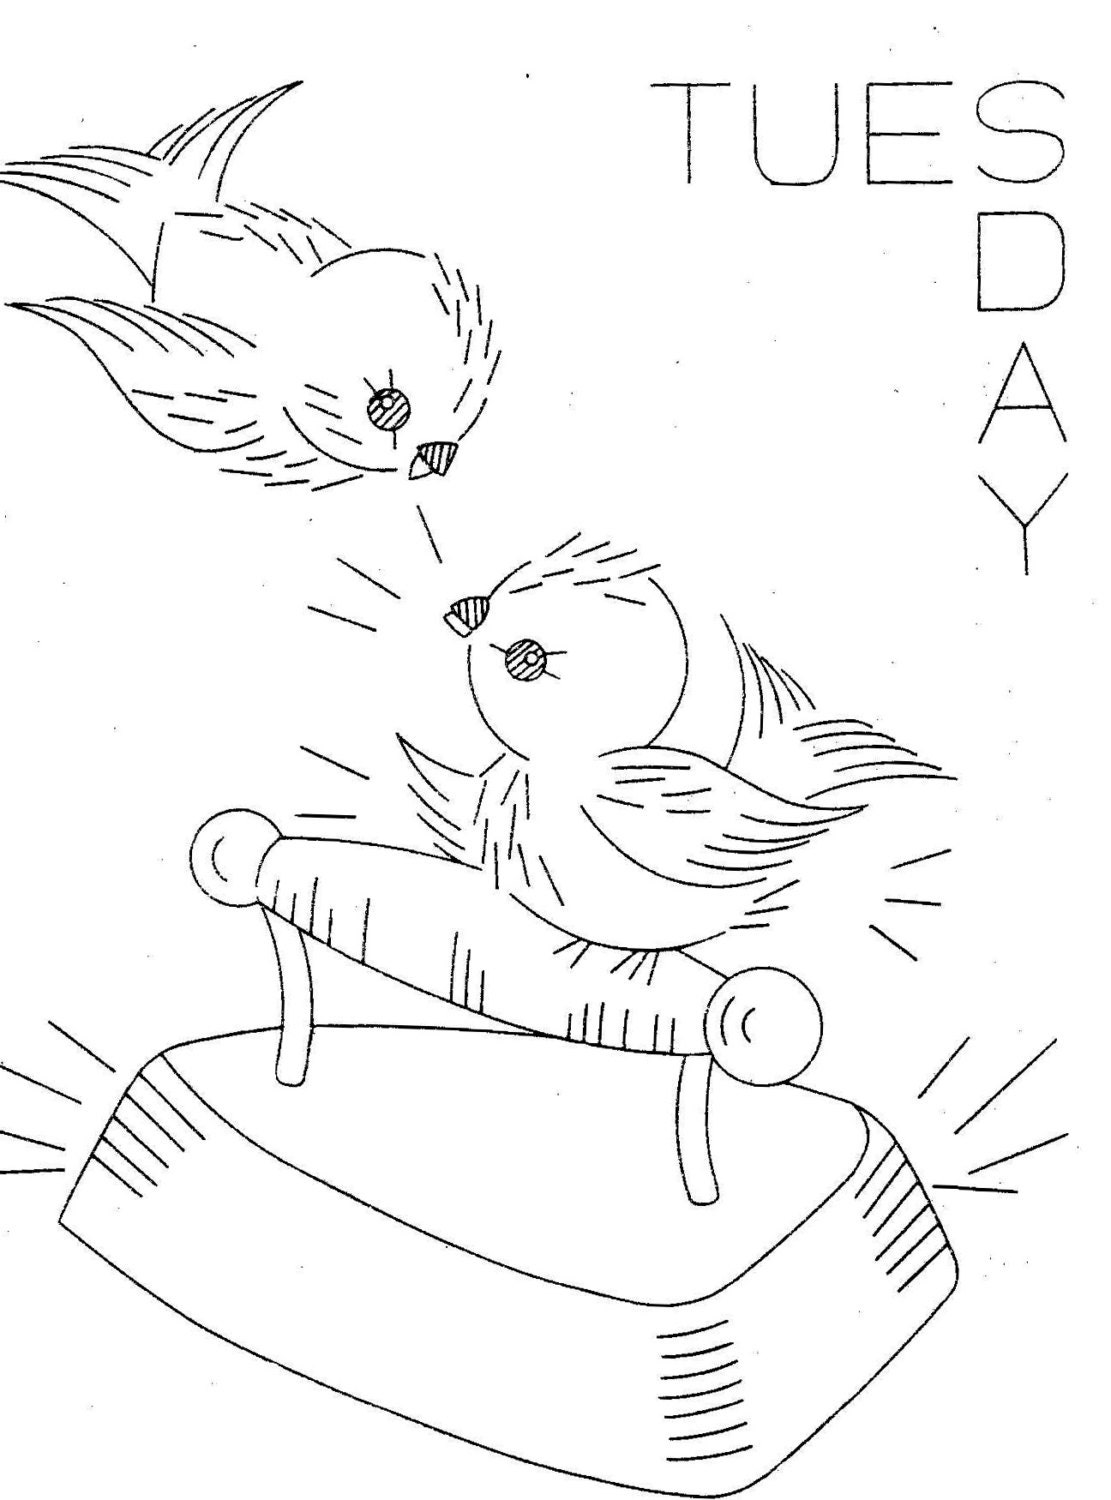 Hand Embroidery Pattern 626 Birds for Days of the Week